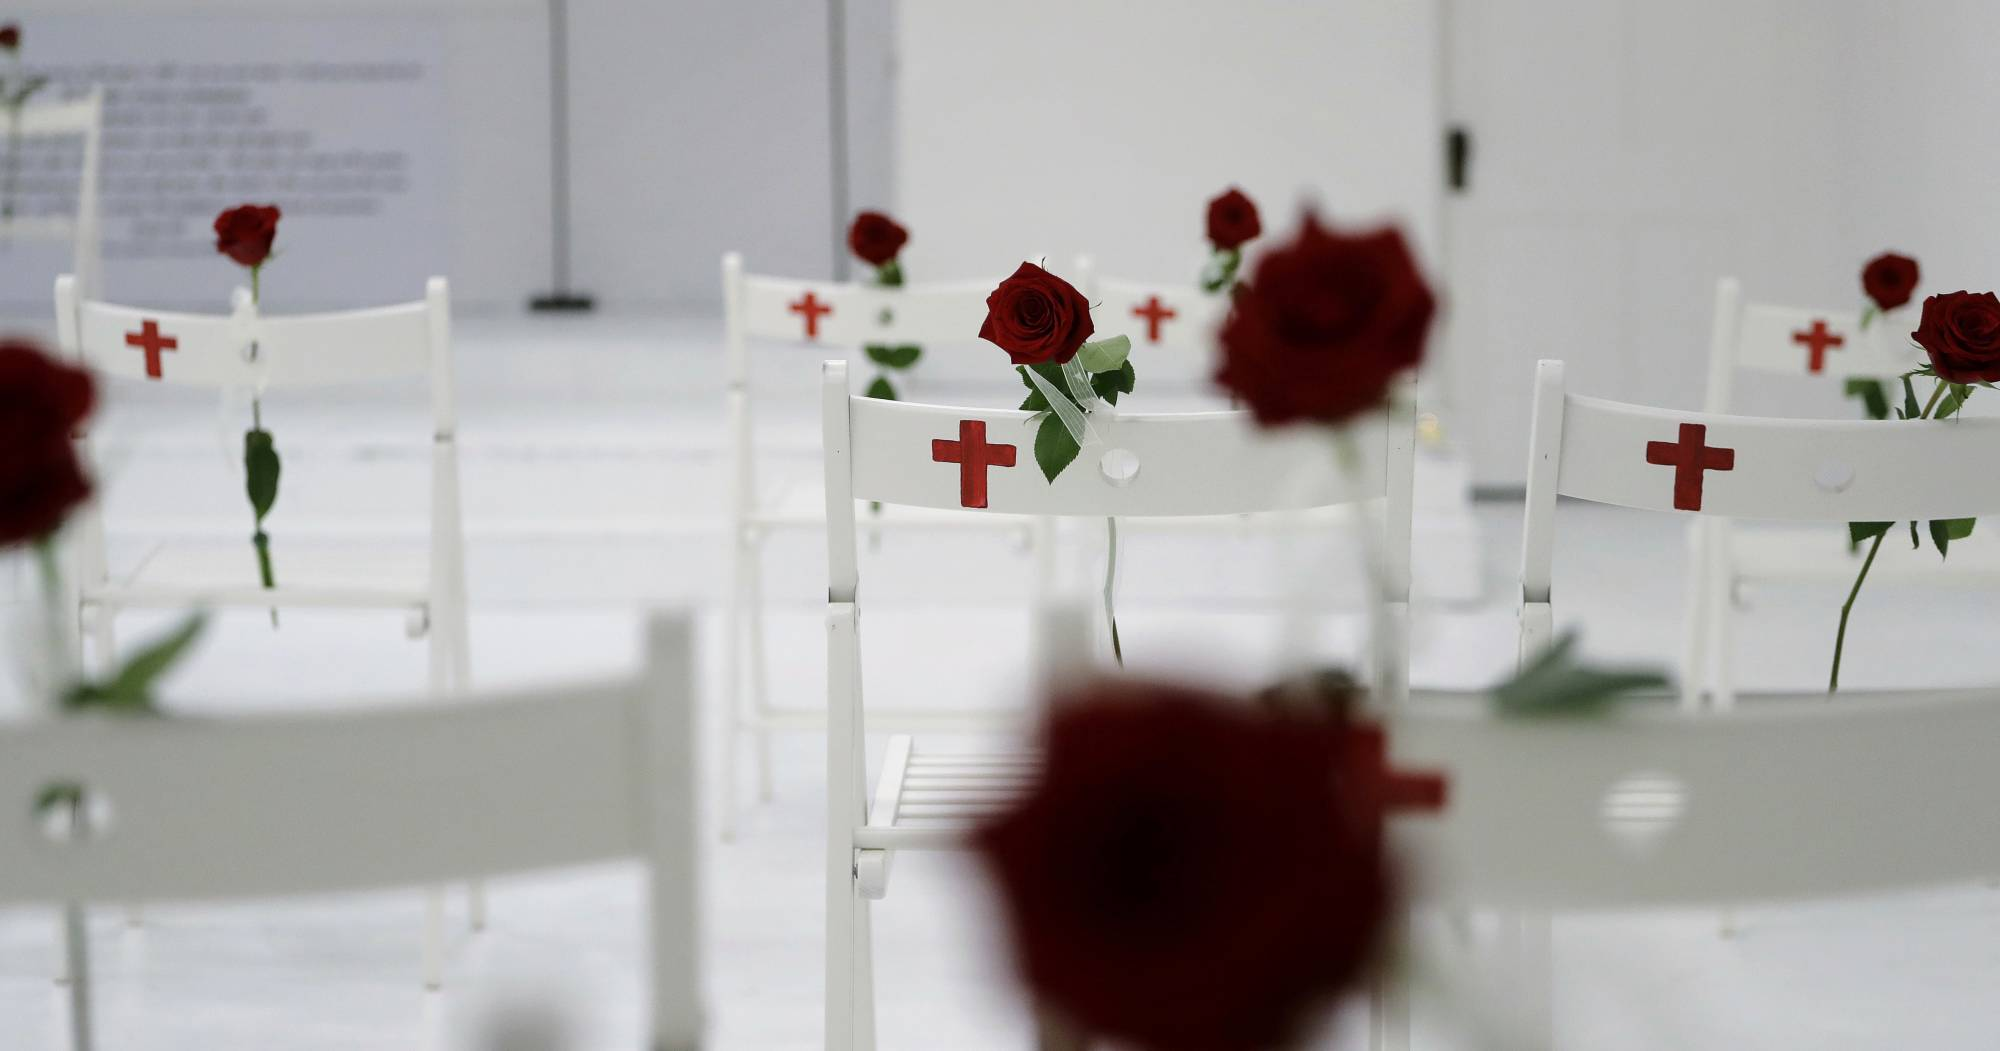 FILE - In this Nov. 12, 2017, file photo, a memorial for the victims of the shooting at Sutherland Springs First Baptist Church, including 26 white chairs each painted with a cross and and rose, is displayed in the church in Sutherland Springs, Texas. Republican leaders in gun-friendly Texas are stamping down the prospects of 'red flag' laws that would let enforcement seize some firearms from people who are deemed dangerous to themselves or others. Gun control advocates hoped for an opening after mass shootings at the church and high school within 6 months of each other. (AP Photo/Eric Gay, File)